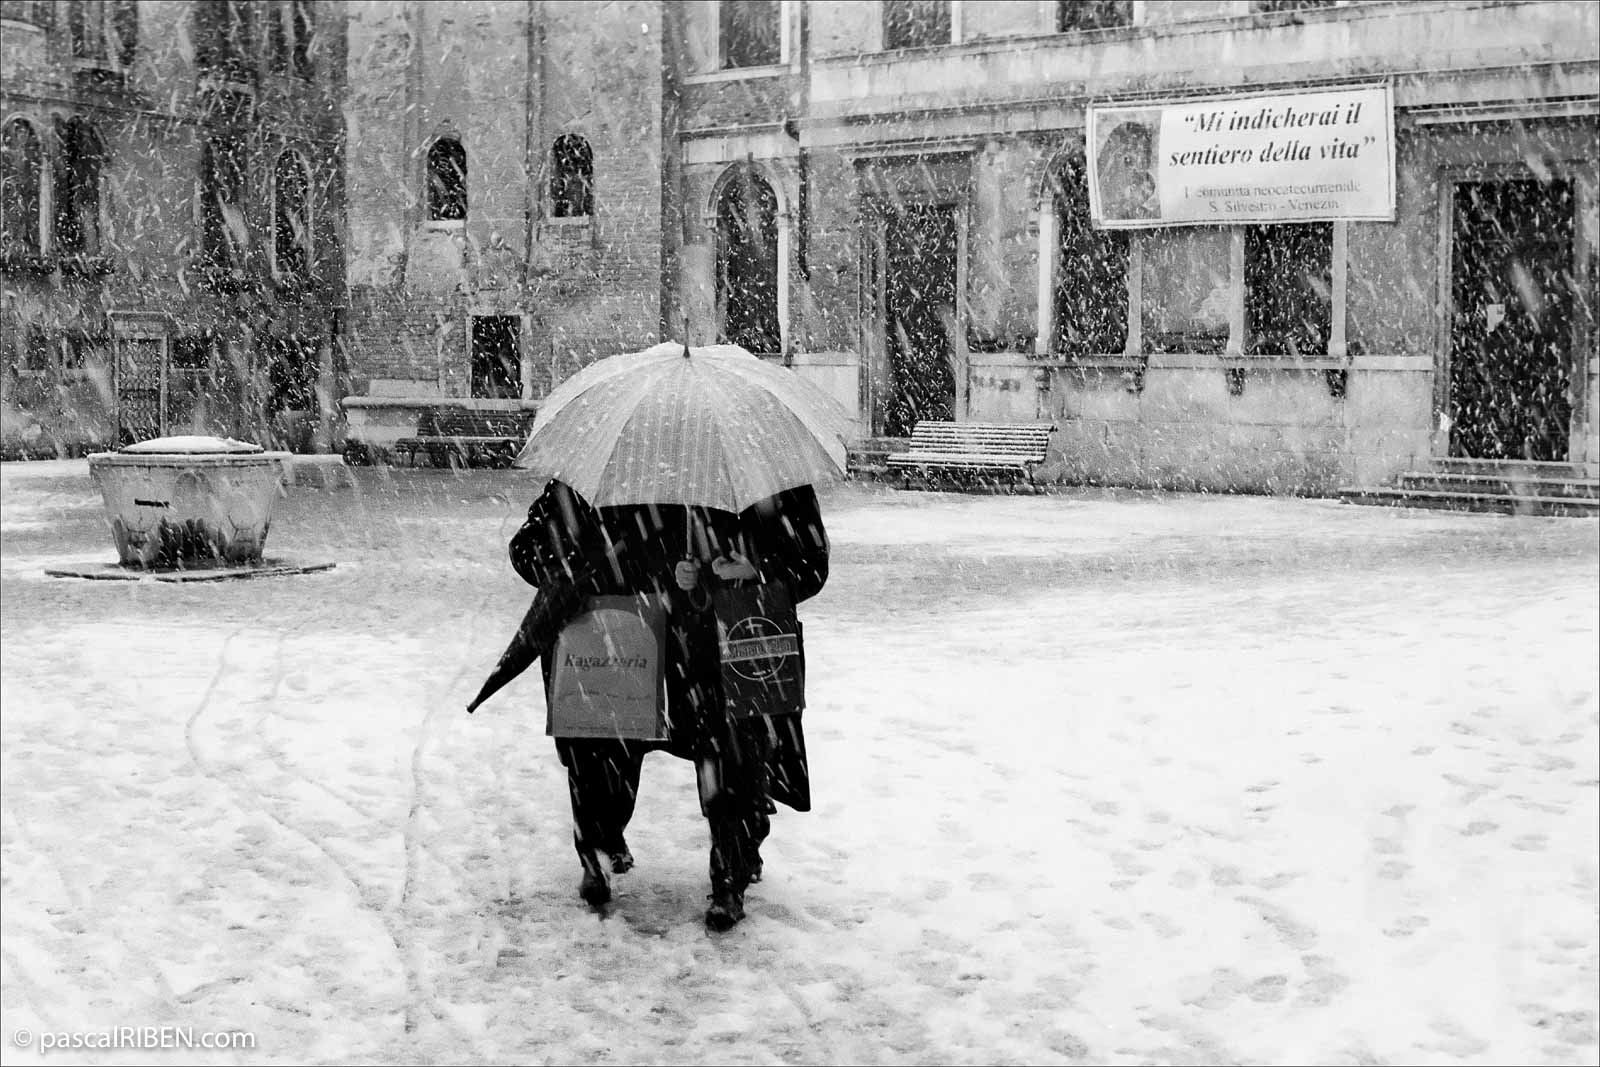 Snow and Umbrella on Campo San Silvestro, San Polo – Venice, Italy